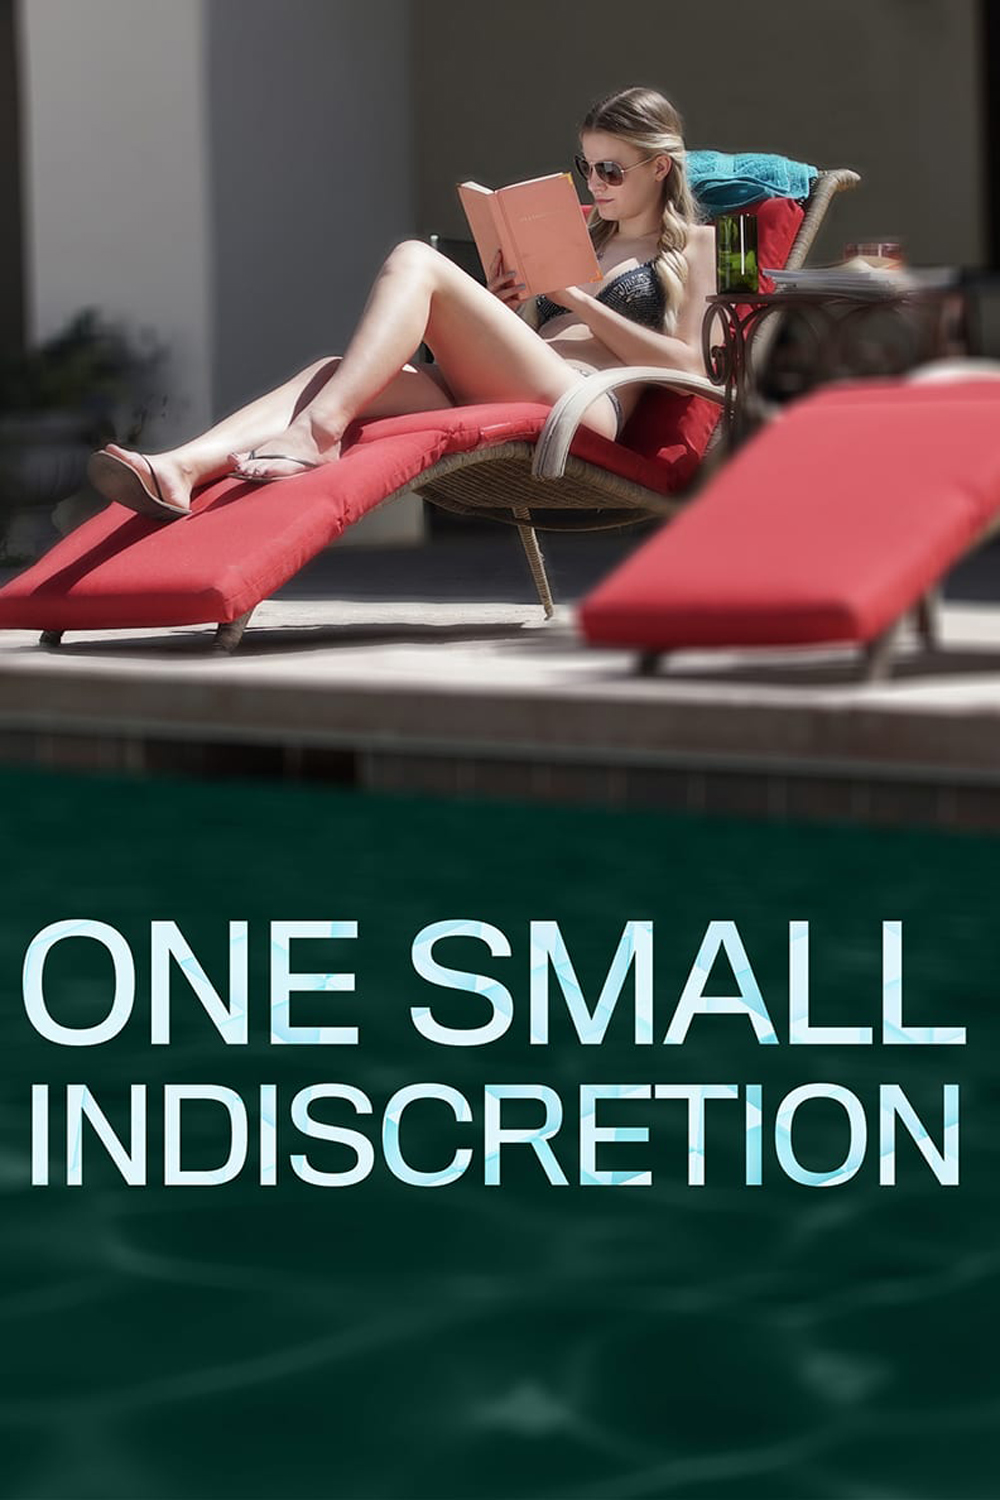 One Small Indiscretion (2017) 1080P